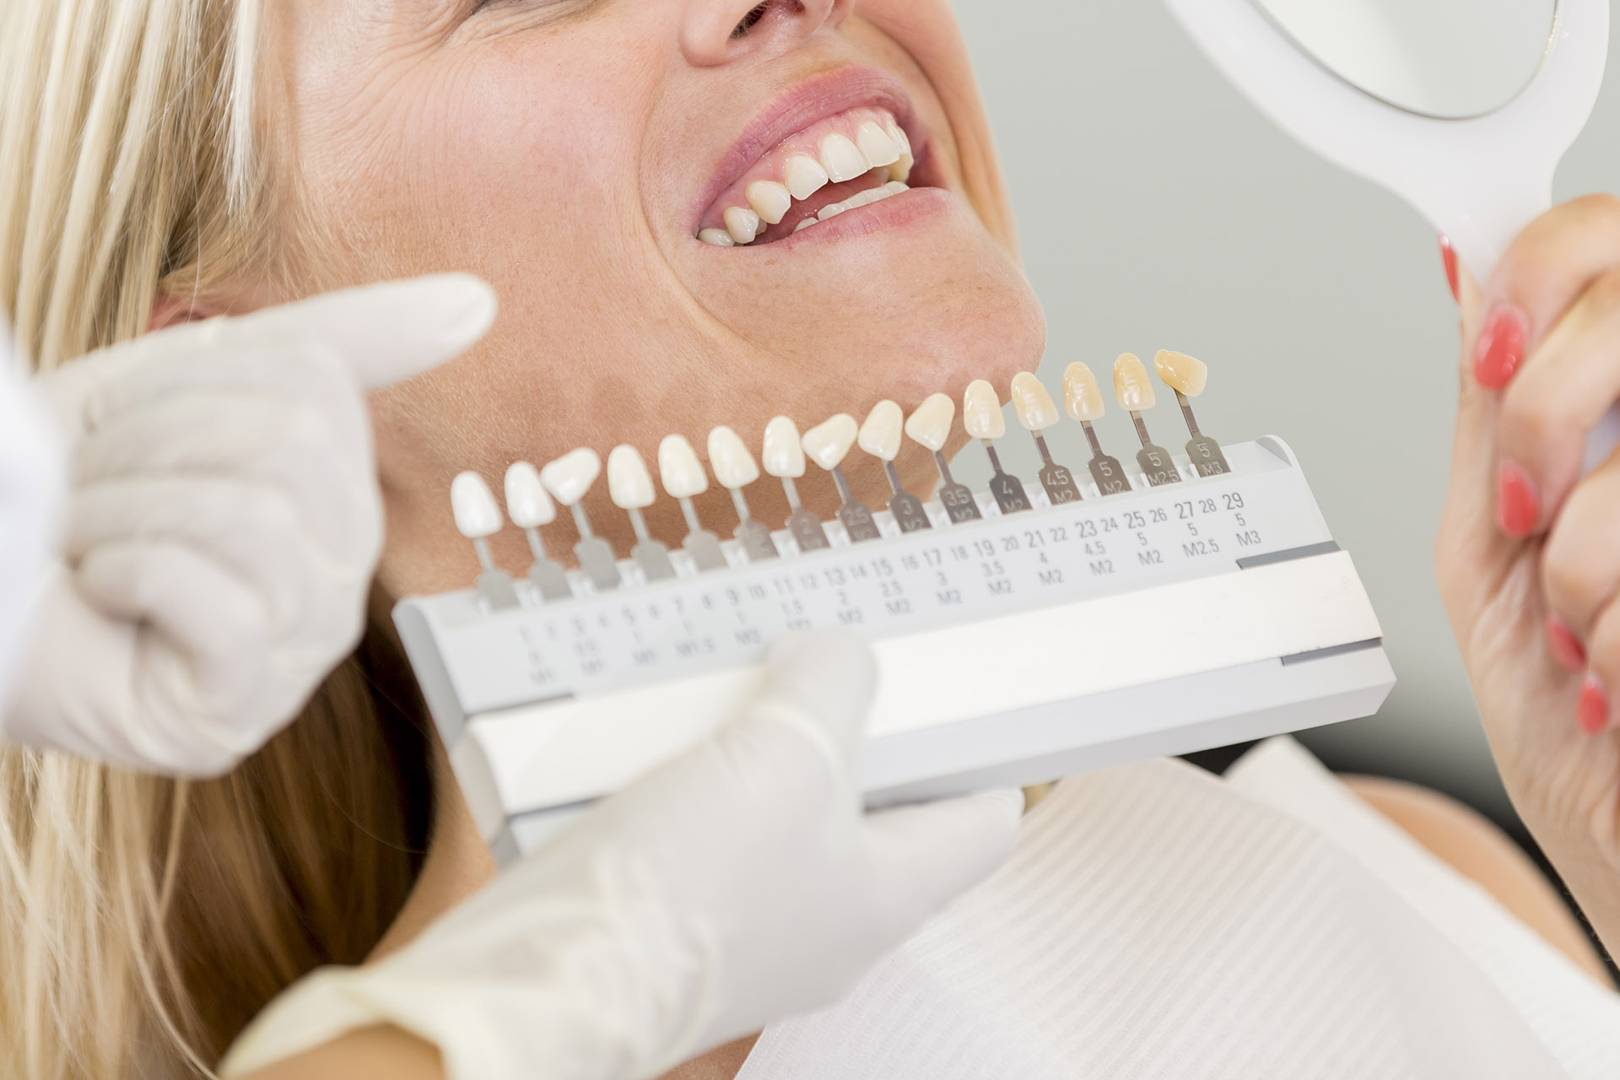 Teeth Whitening Kits Uk The Best Options To Whiten Your Smile Glamour Uk